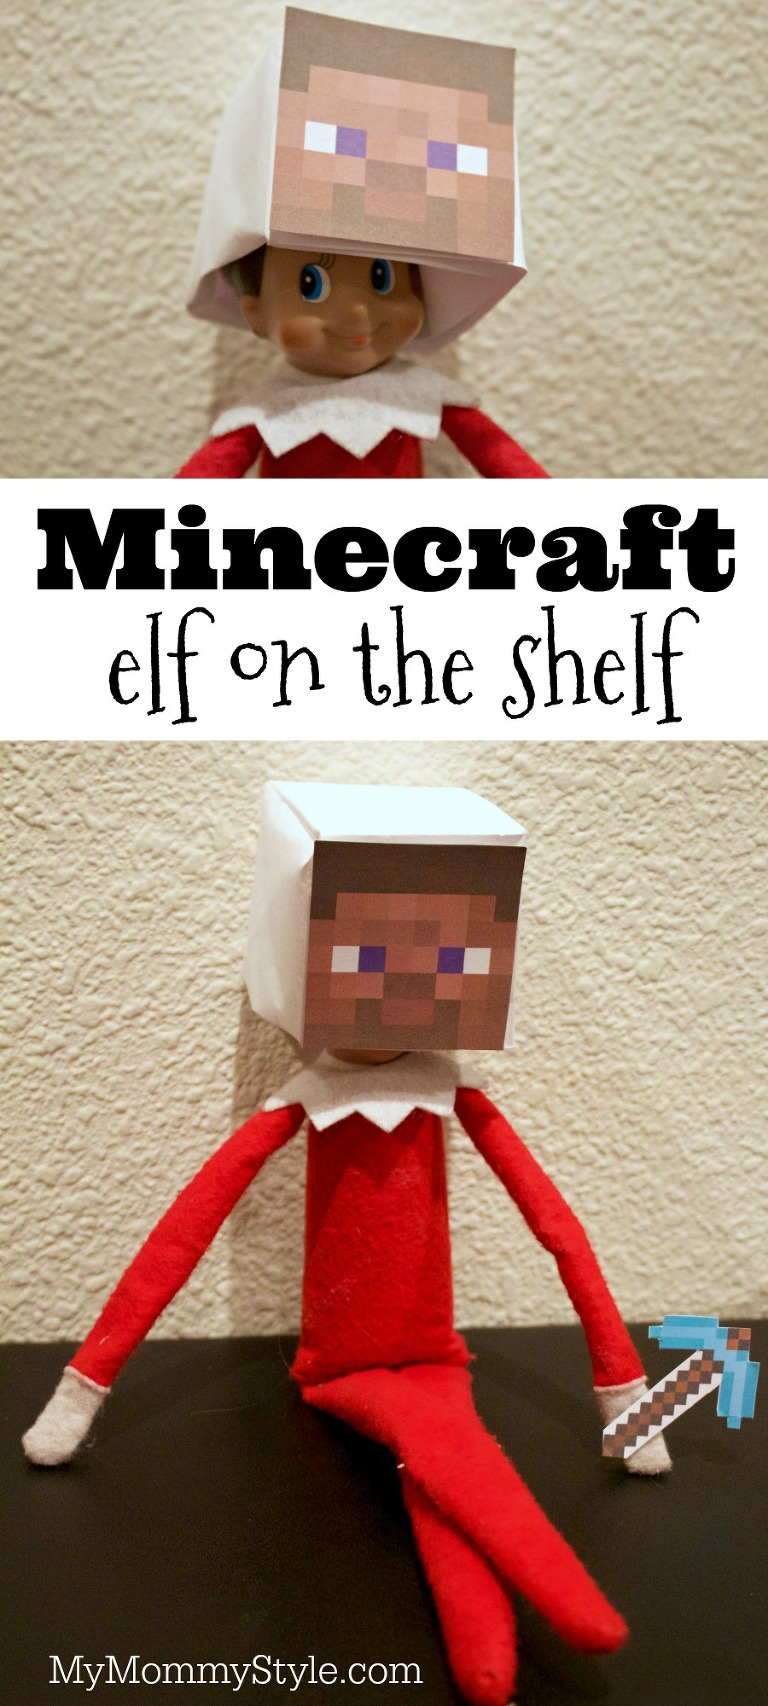 image relating to Minecraft Masks Printable identified as Minecraft elf upon the shelf - My Mommy Style and design